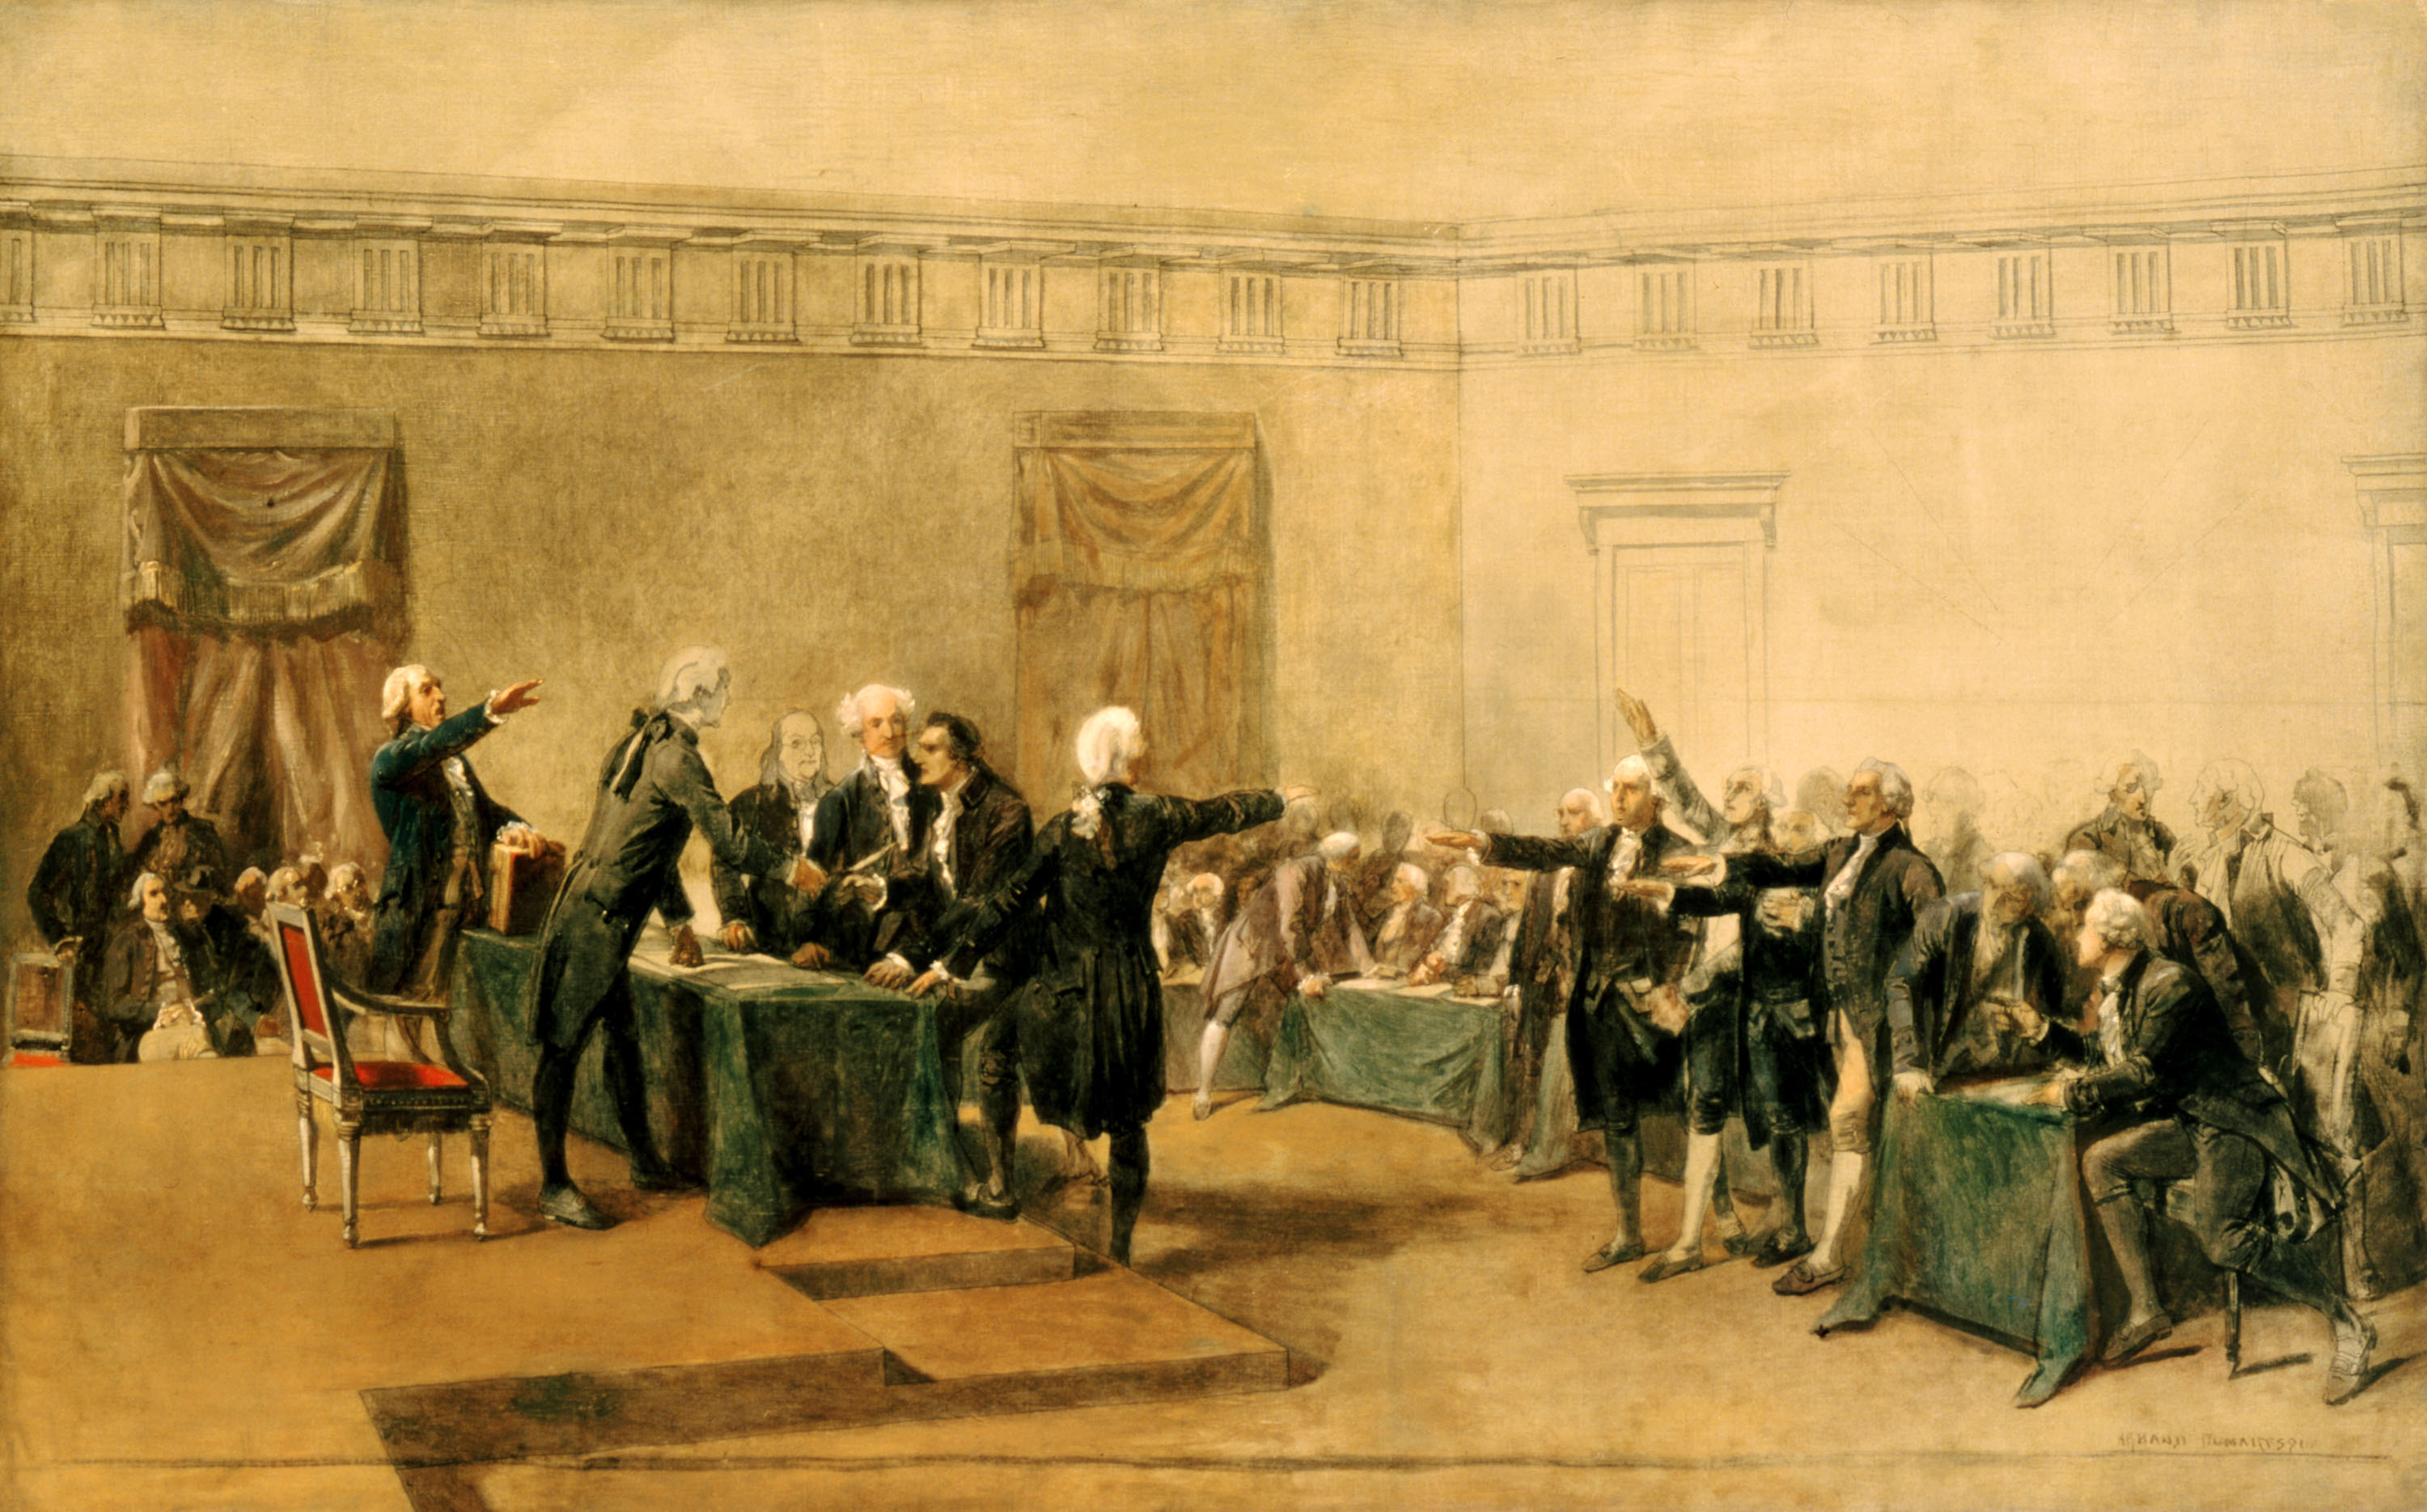 Signing_of_Declaration_of_Independence_by_Armand-Dumaresq,_c1873_-_restored